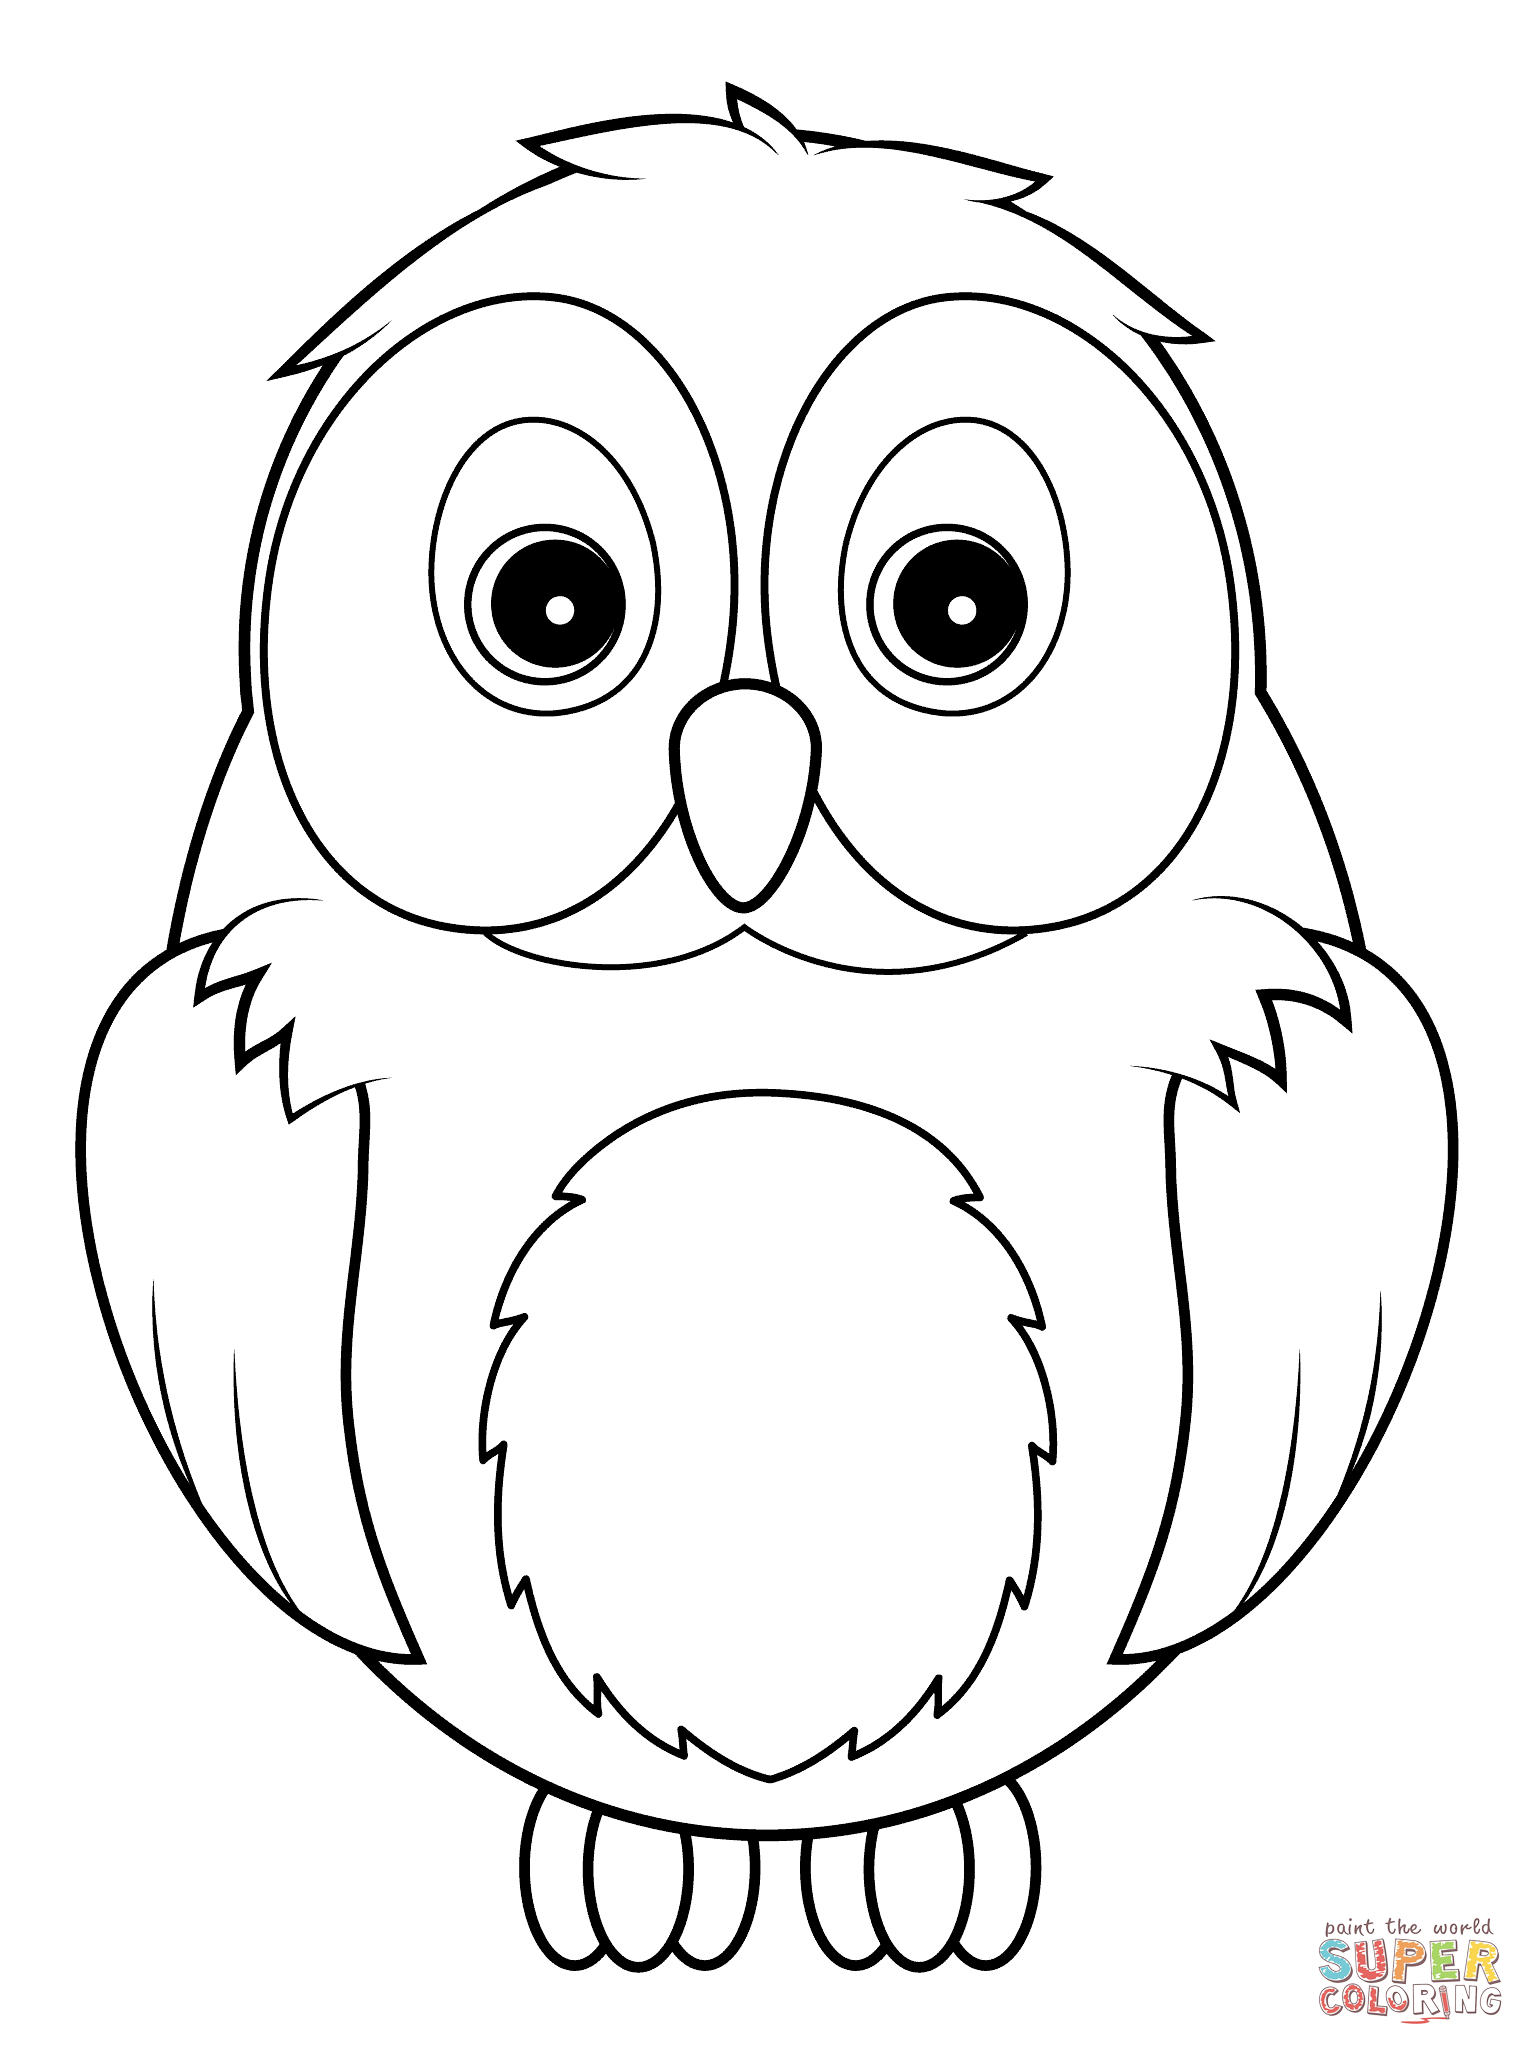 Cute Owl Coloring Page   Free Printable Coloring Pages - Free Printable Owl Coloring Sheets